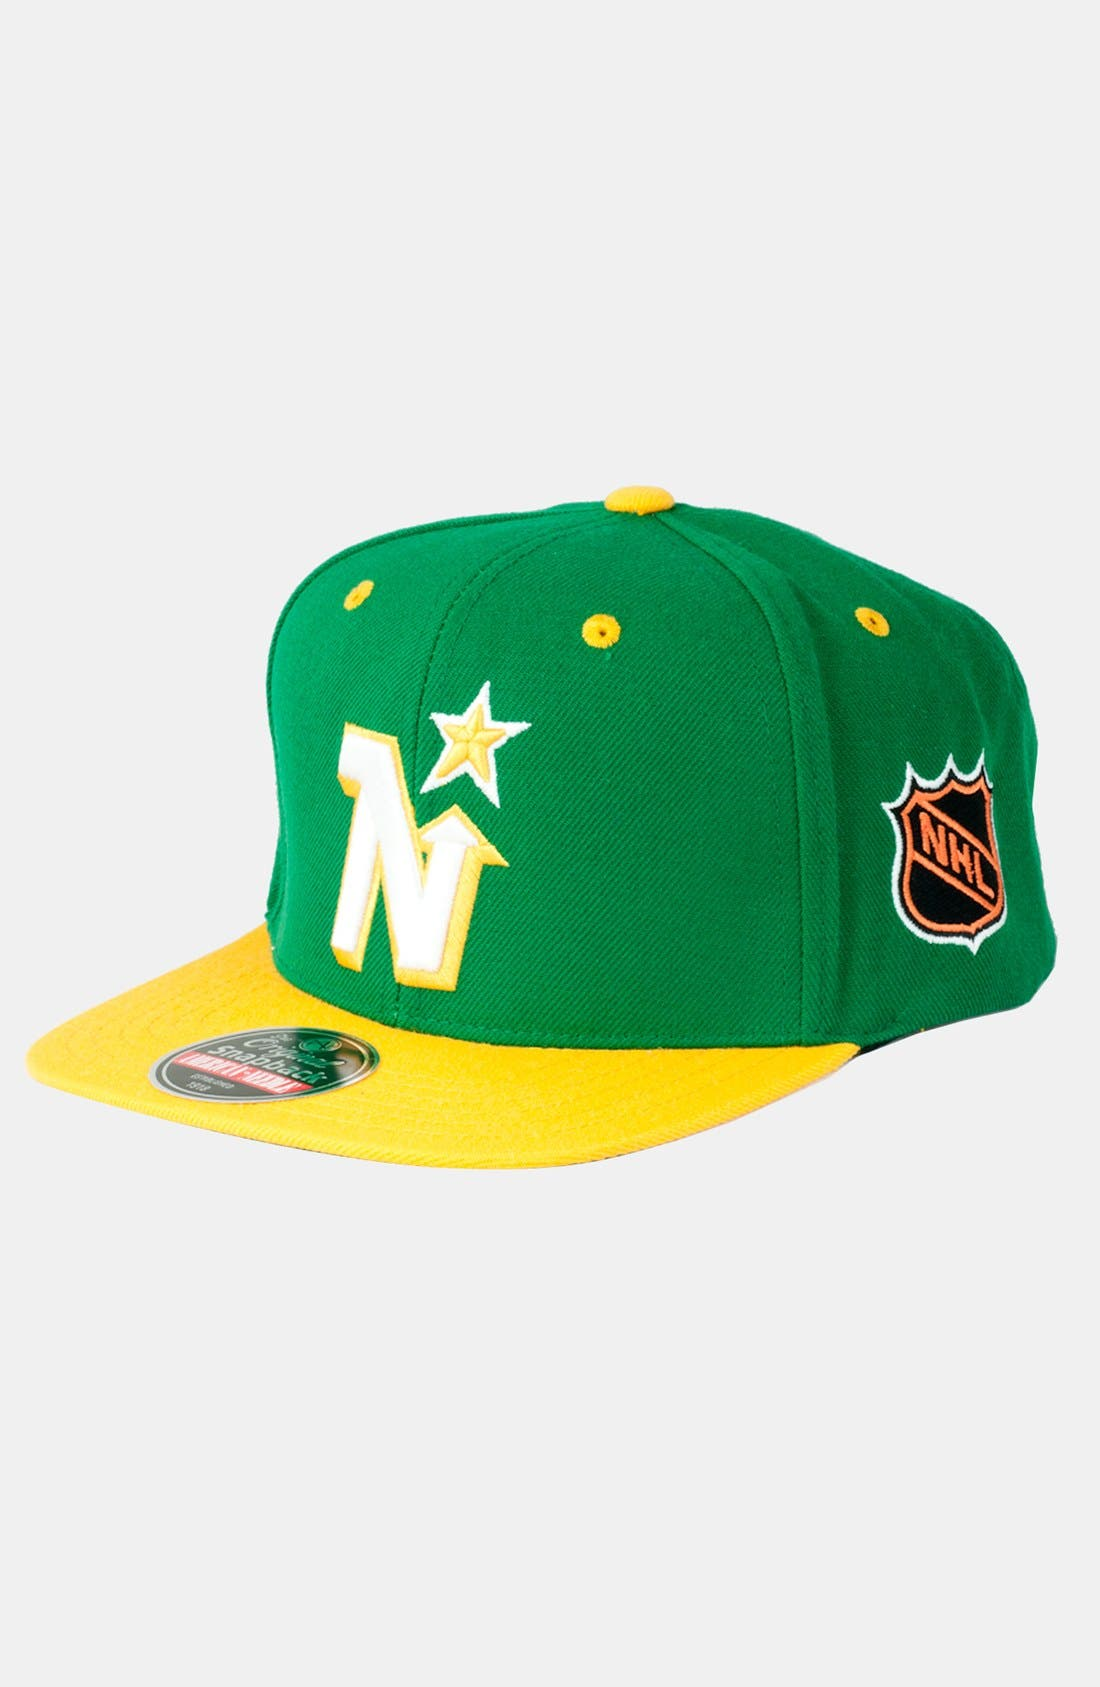 Alternate Image 1 Selected - American Needle 'Minnesota North Stars - Blockhead' Snapback Hockey Cap